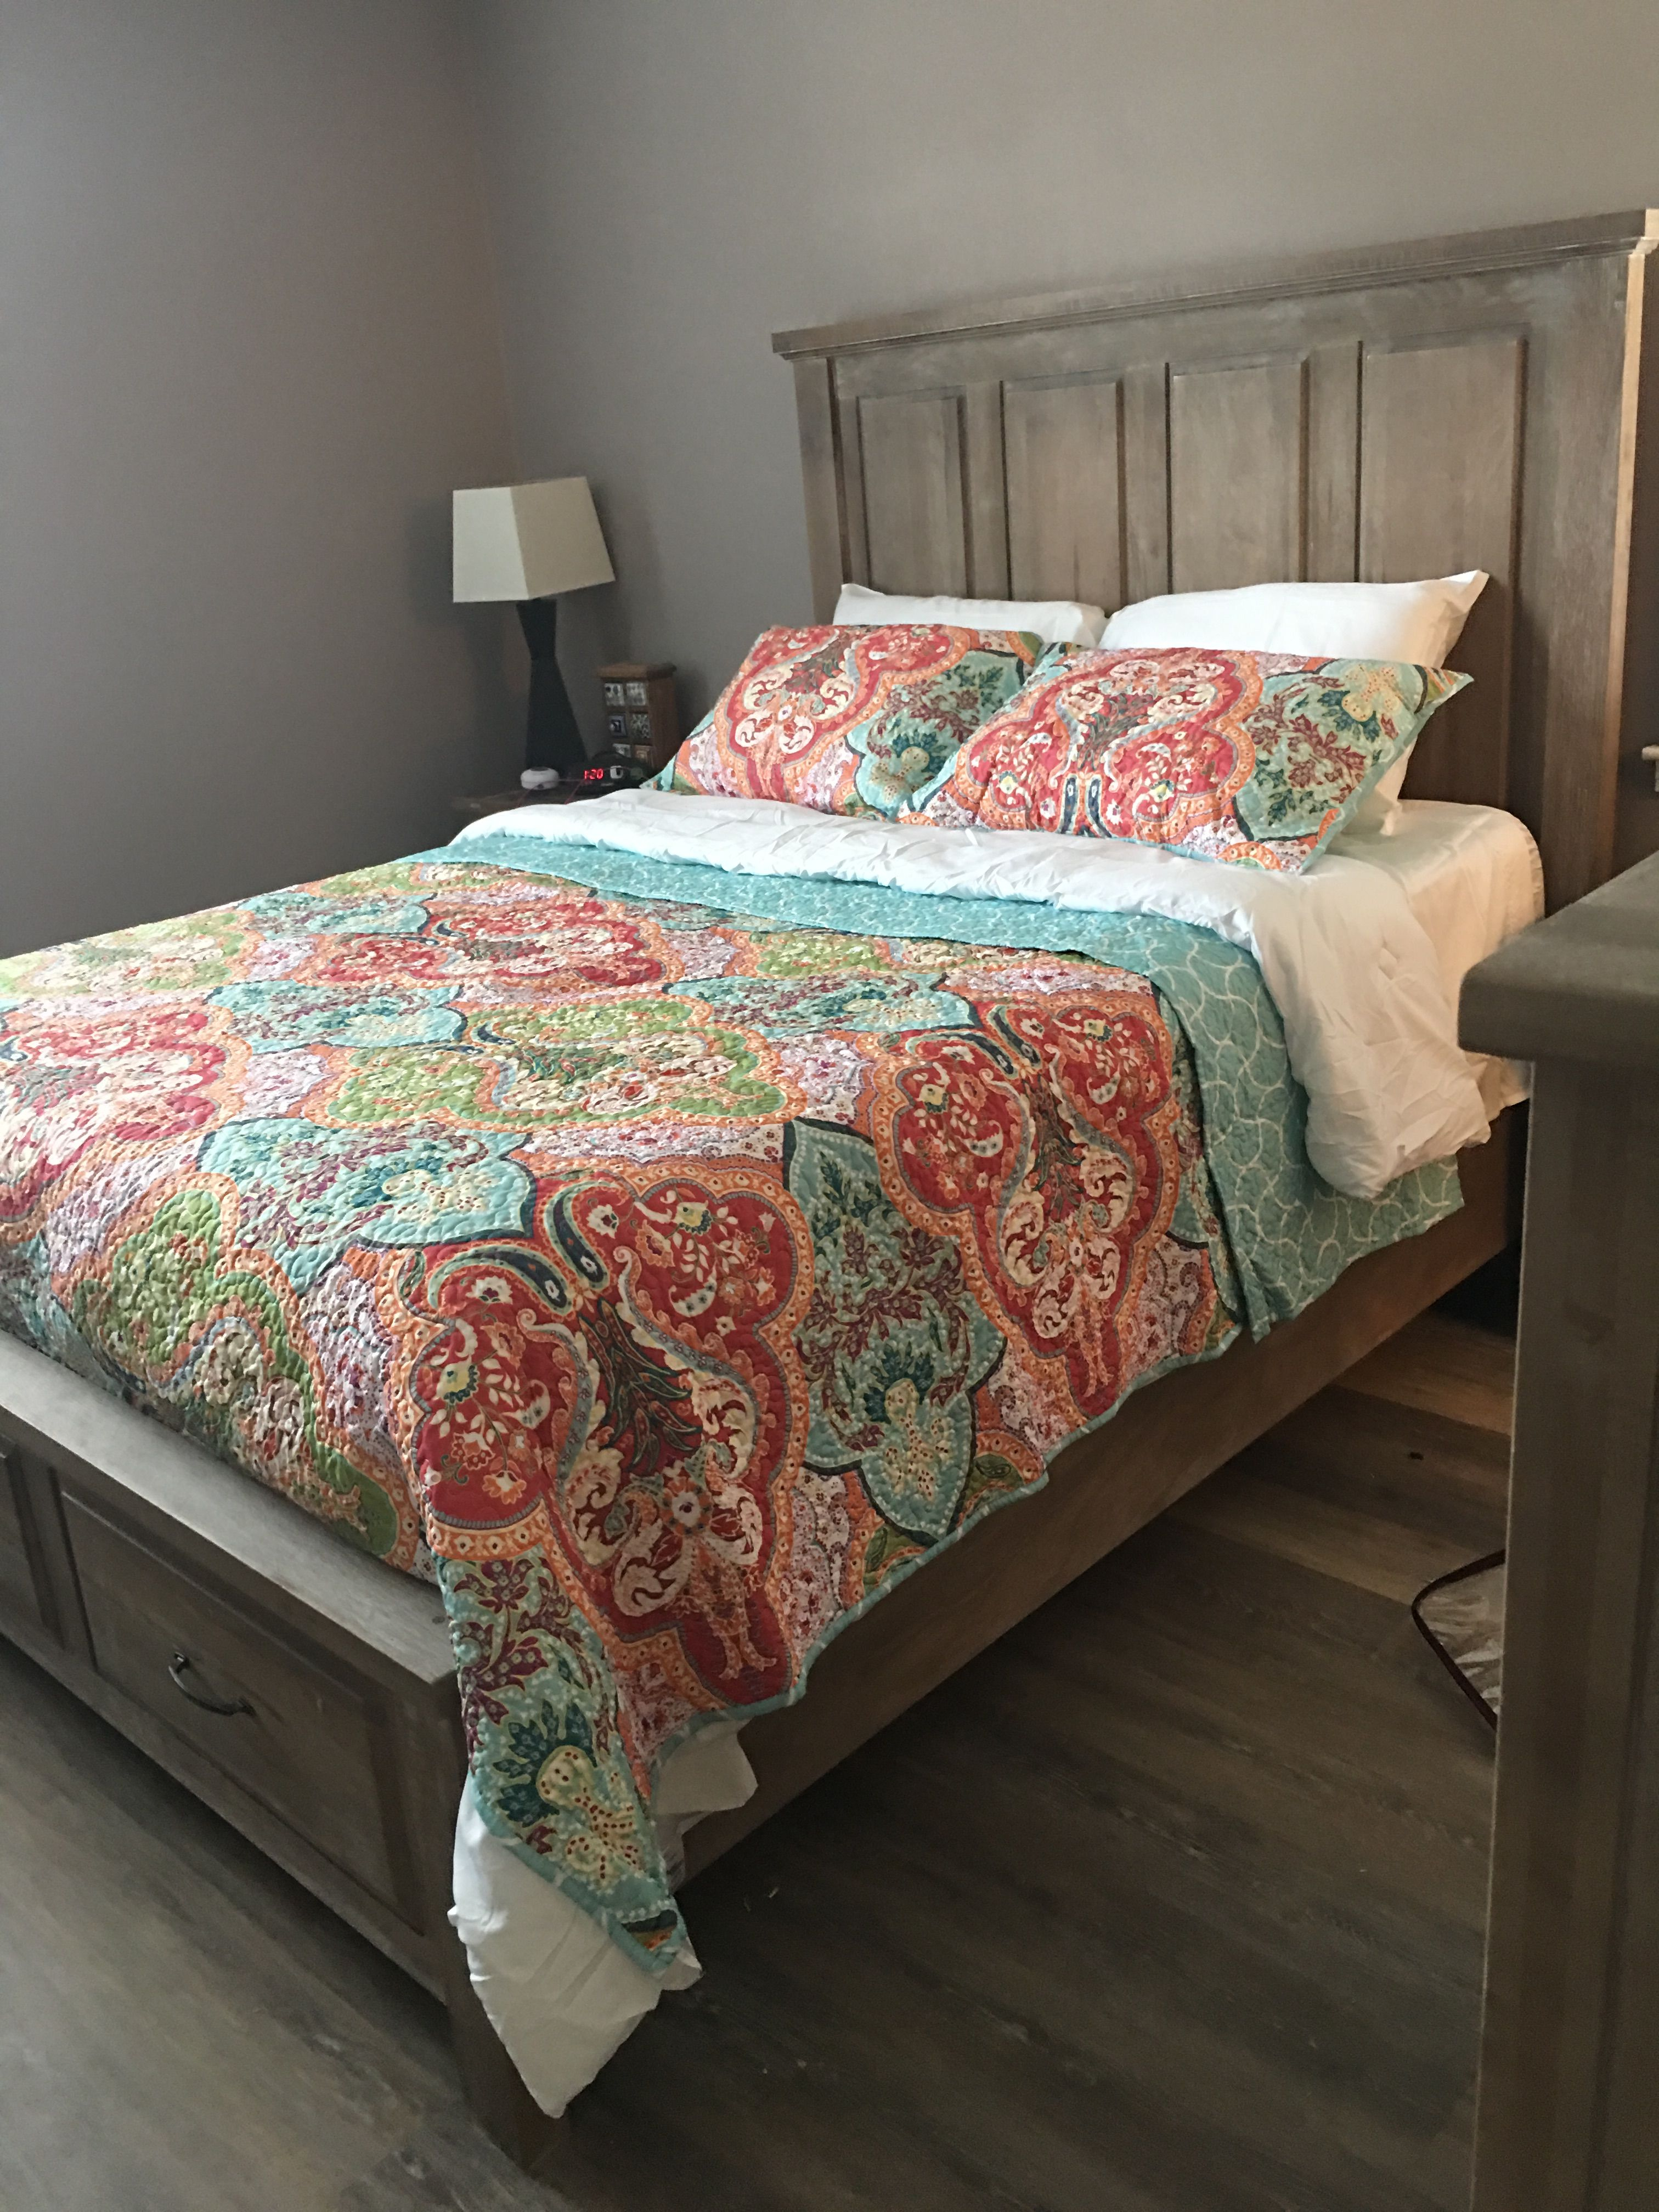 Our new bed set, bedroom furniture, wall color, and floors